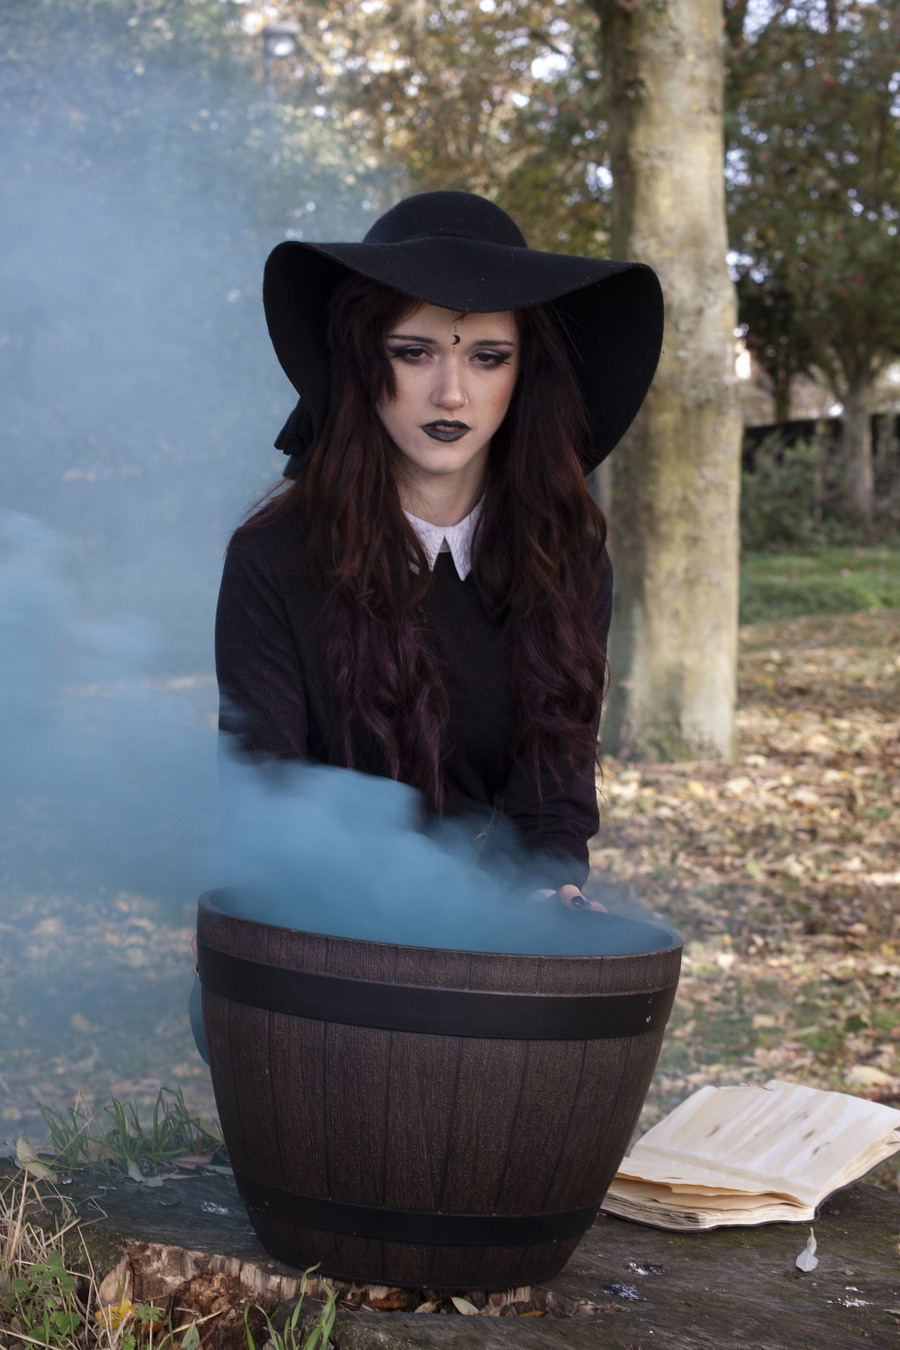 The Witches Couldron / Photography by Fenland Photographic, Model Megan Annie / Uploaded 13th October 2018 @ 01:05 AM